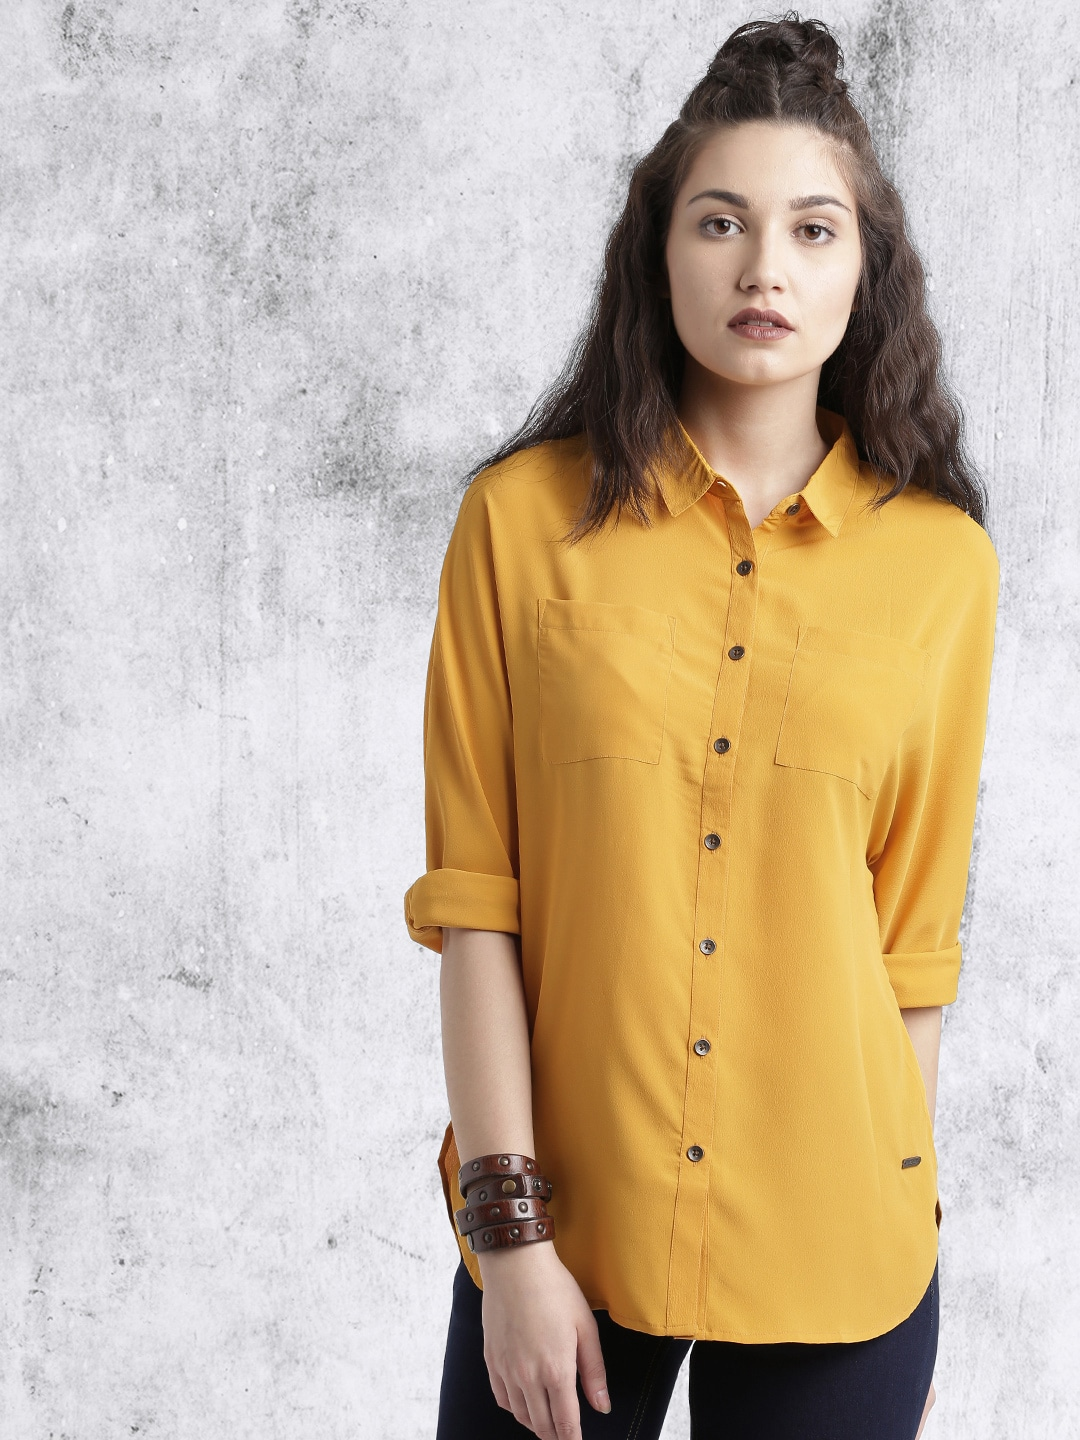 Roadster Mustard Casual Women Shirt